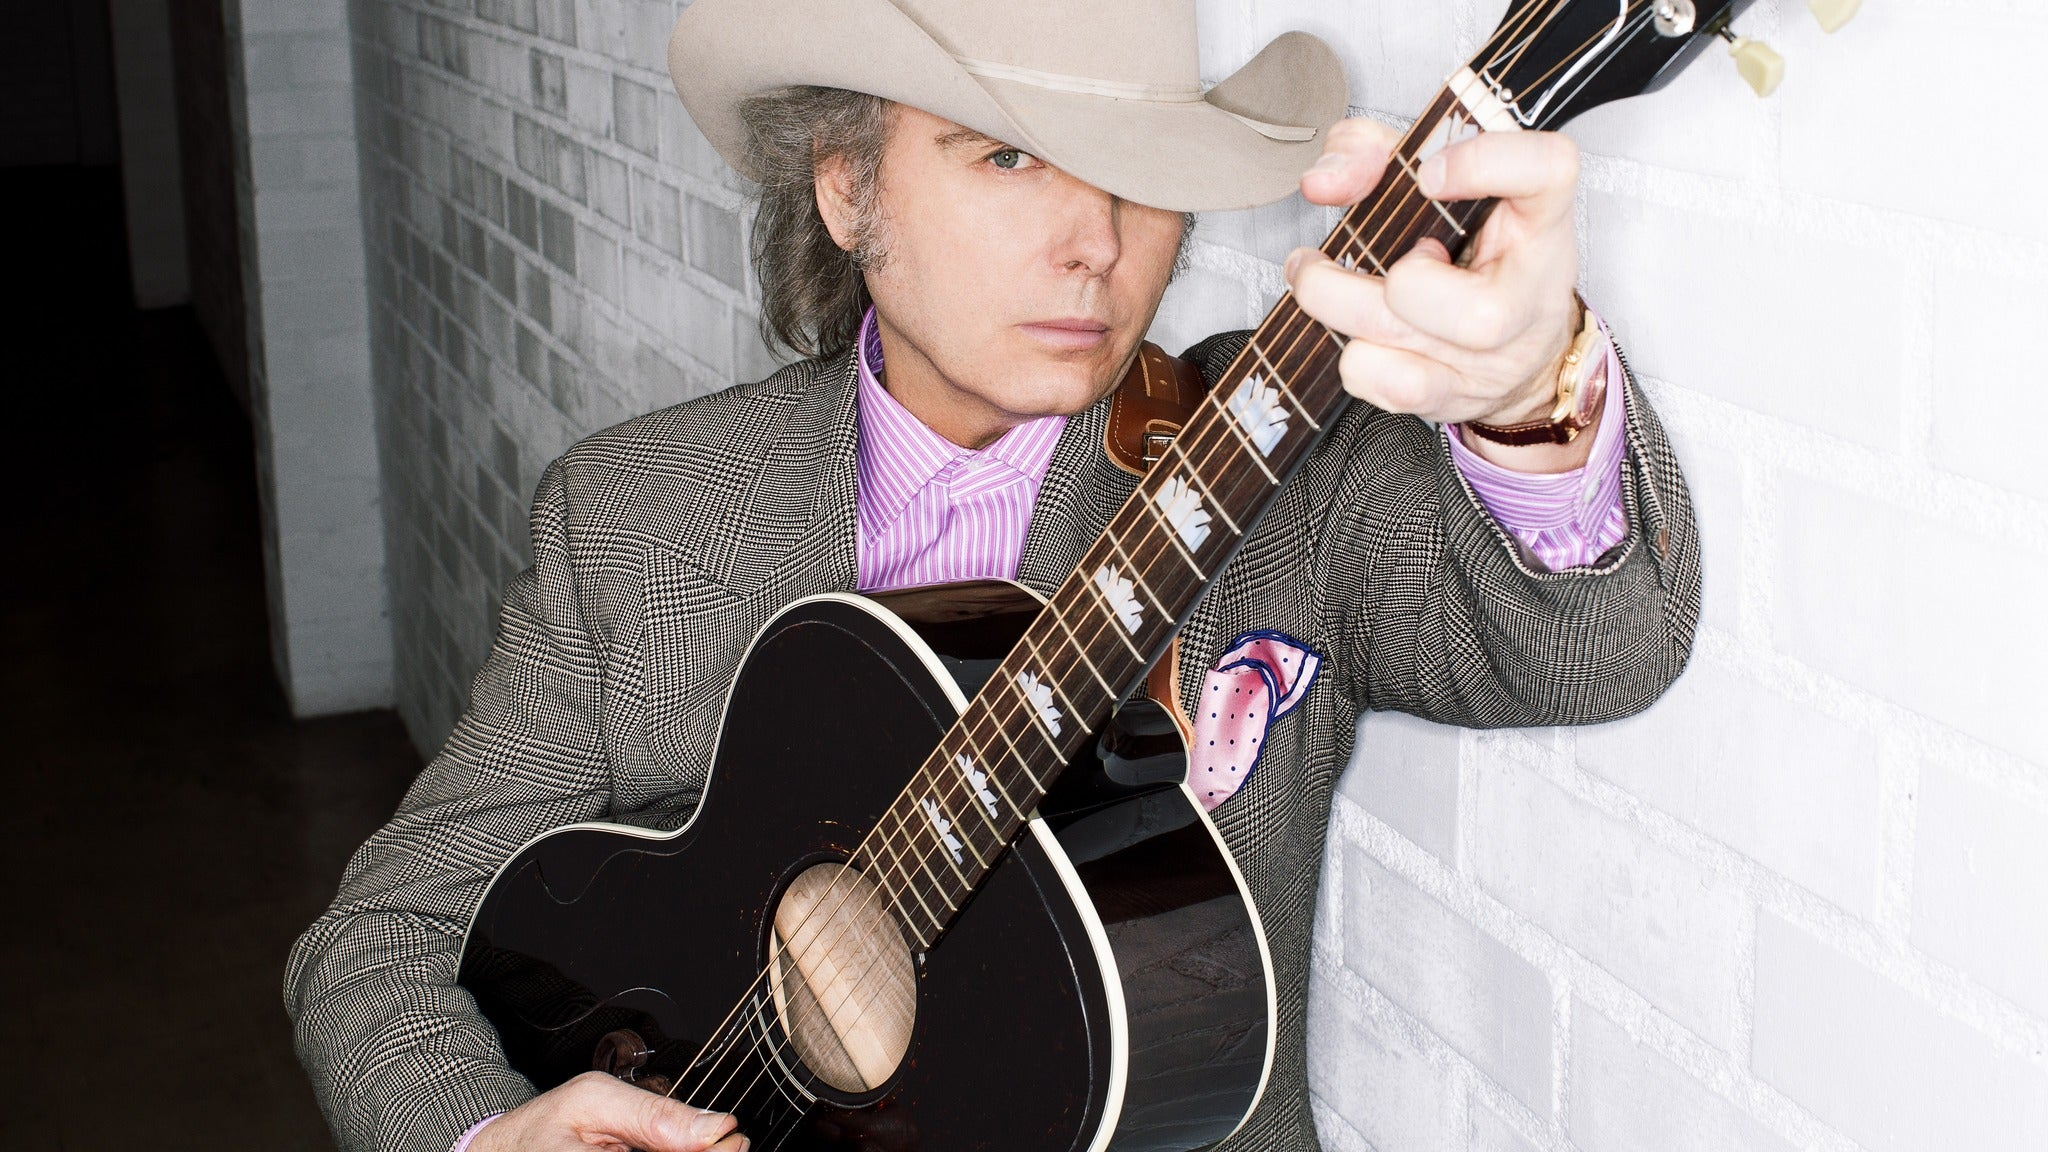 Dwight Yoakam at First National Bank Arena